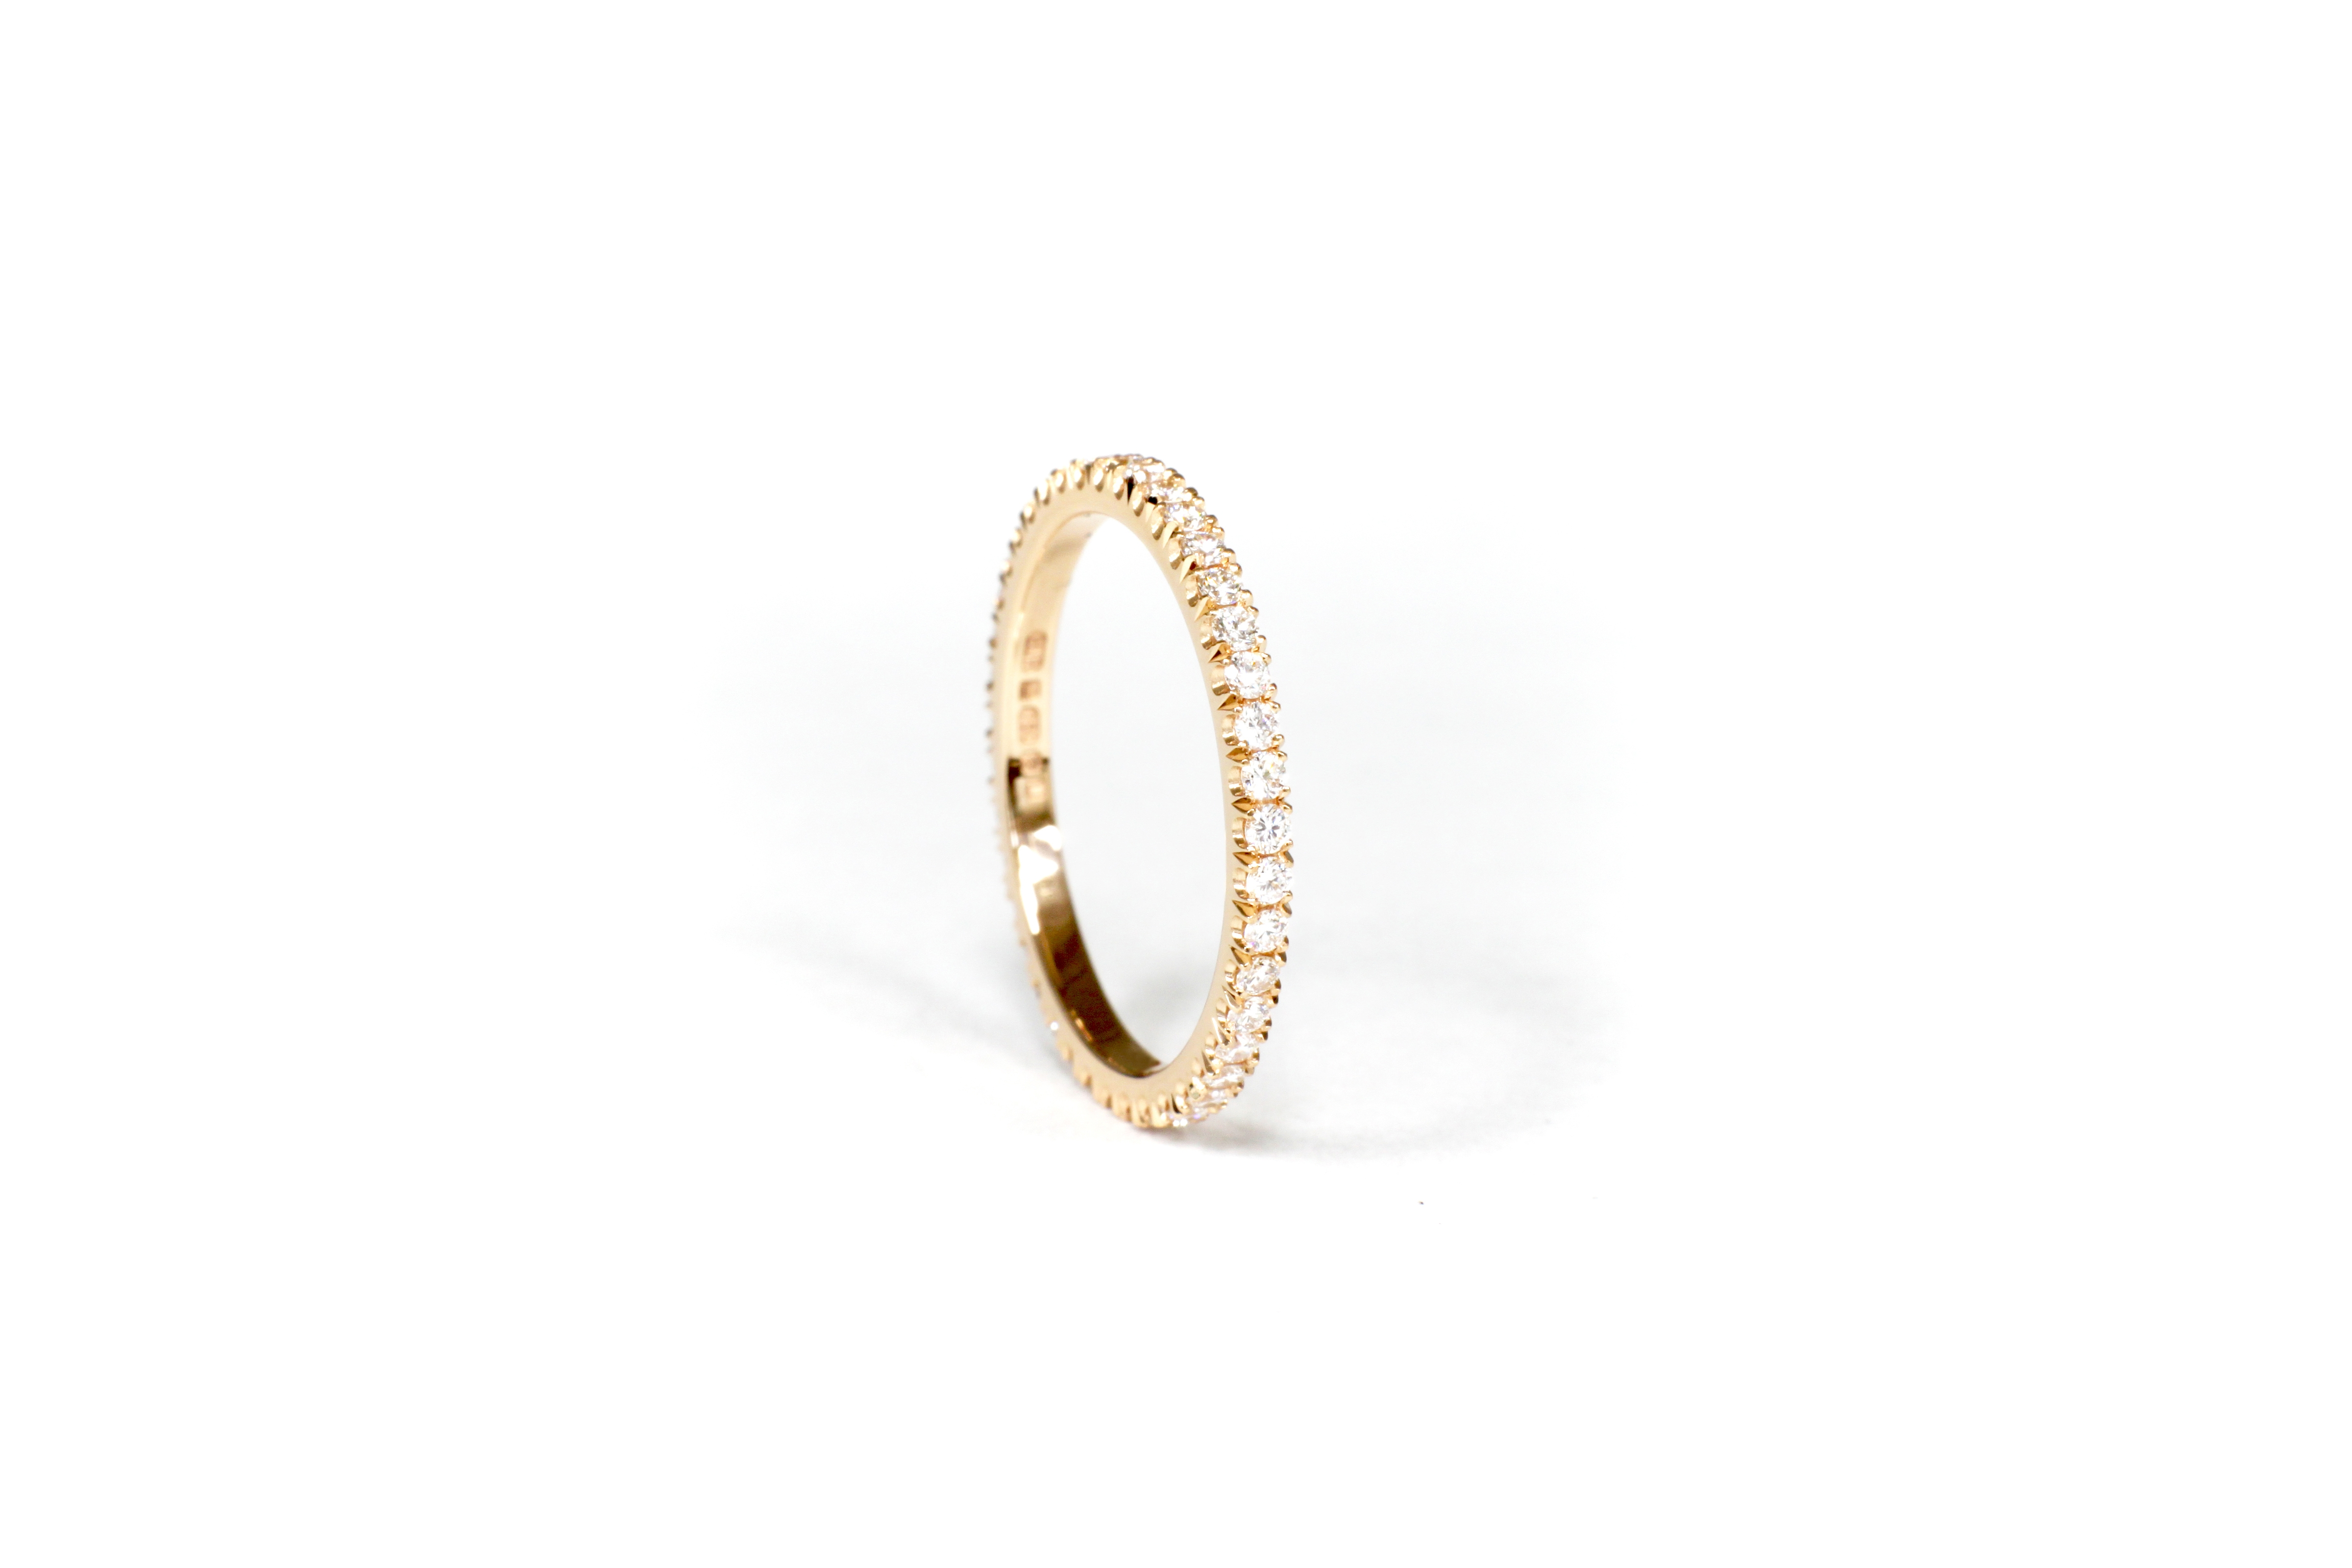 Eternity Band 1 – Copyright BJRdesigns